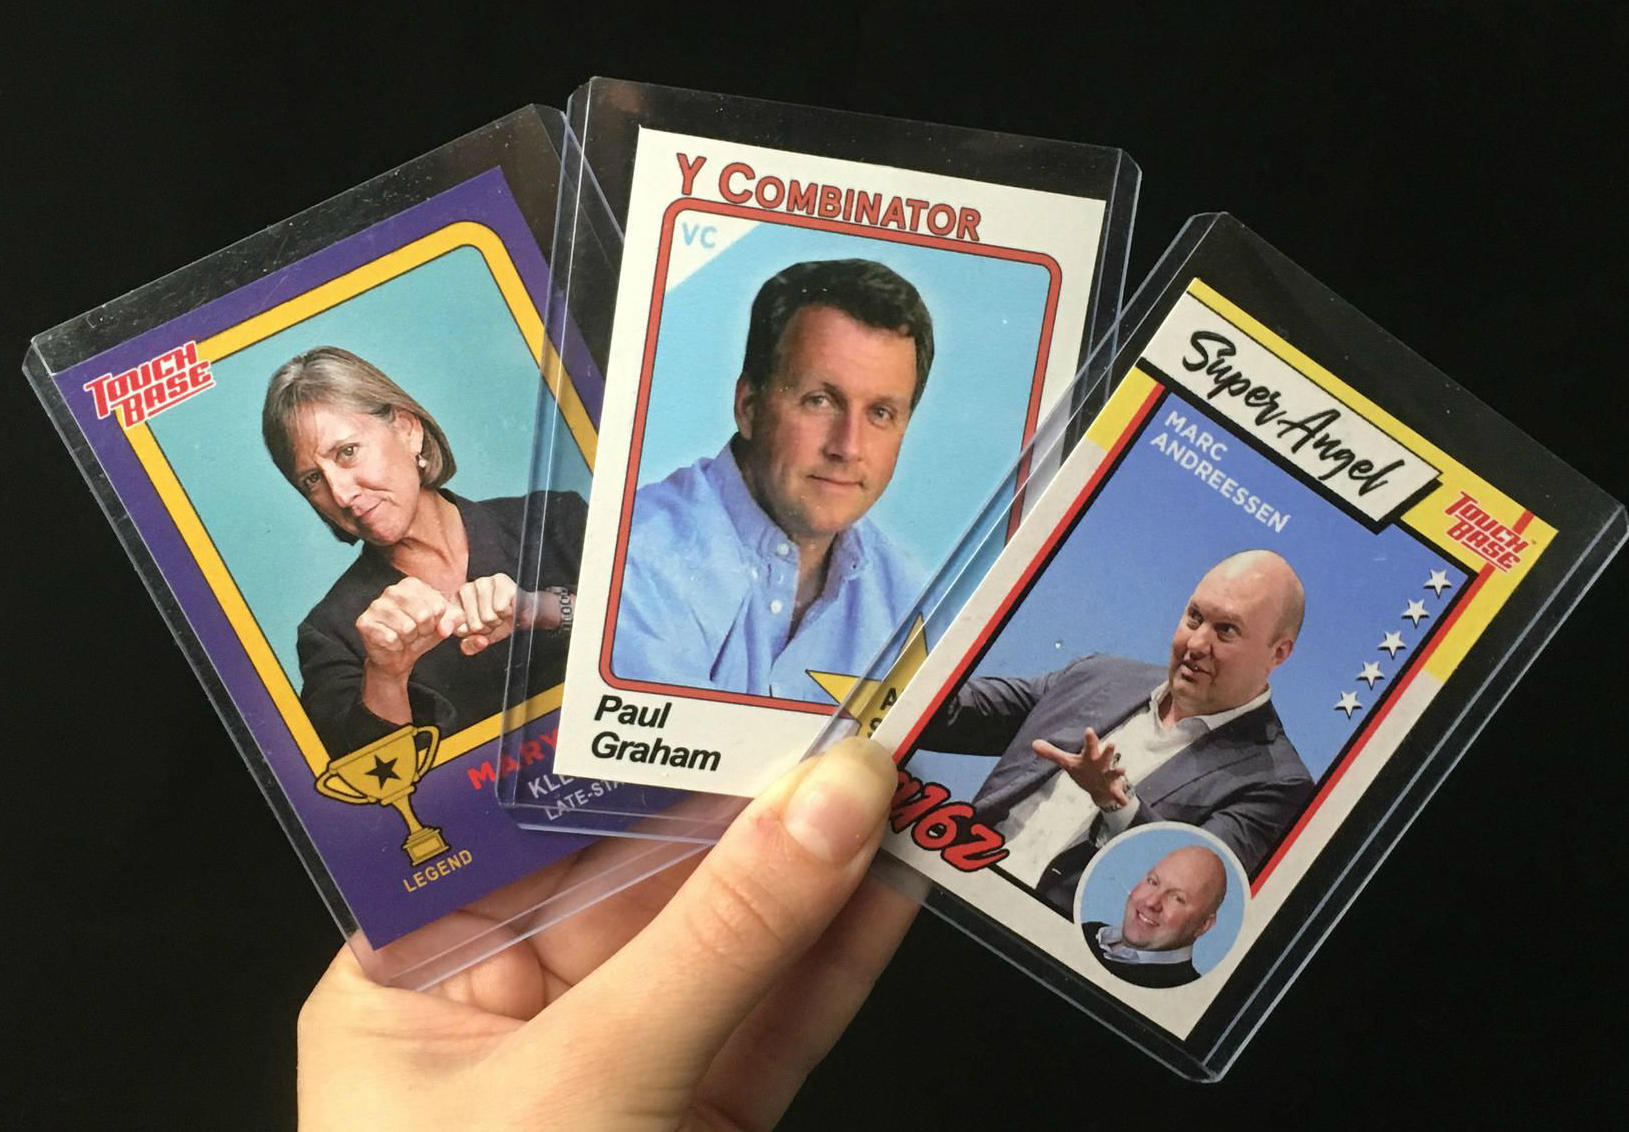 <p>Marc Andreessen is one of many venture capitalists that you can collect in a new set of VC Trading Cards.&nbsp;</p>